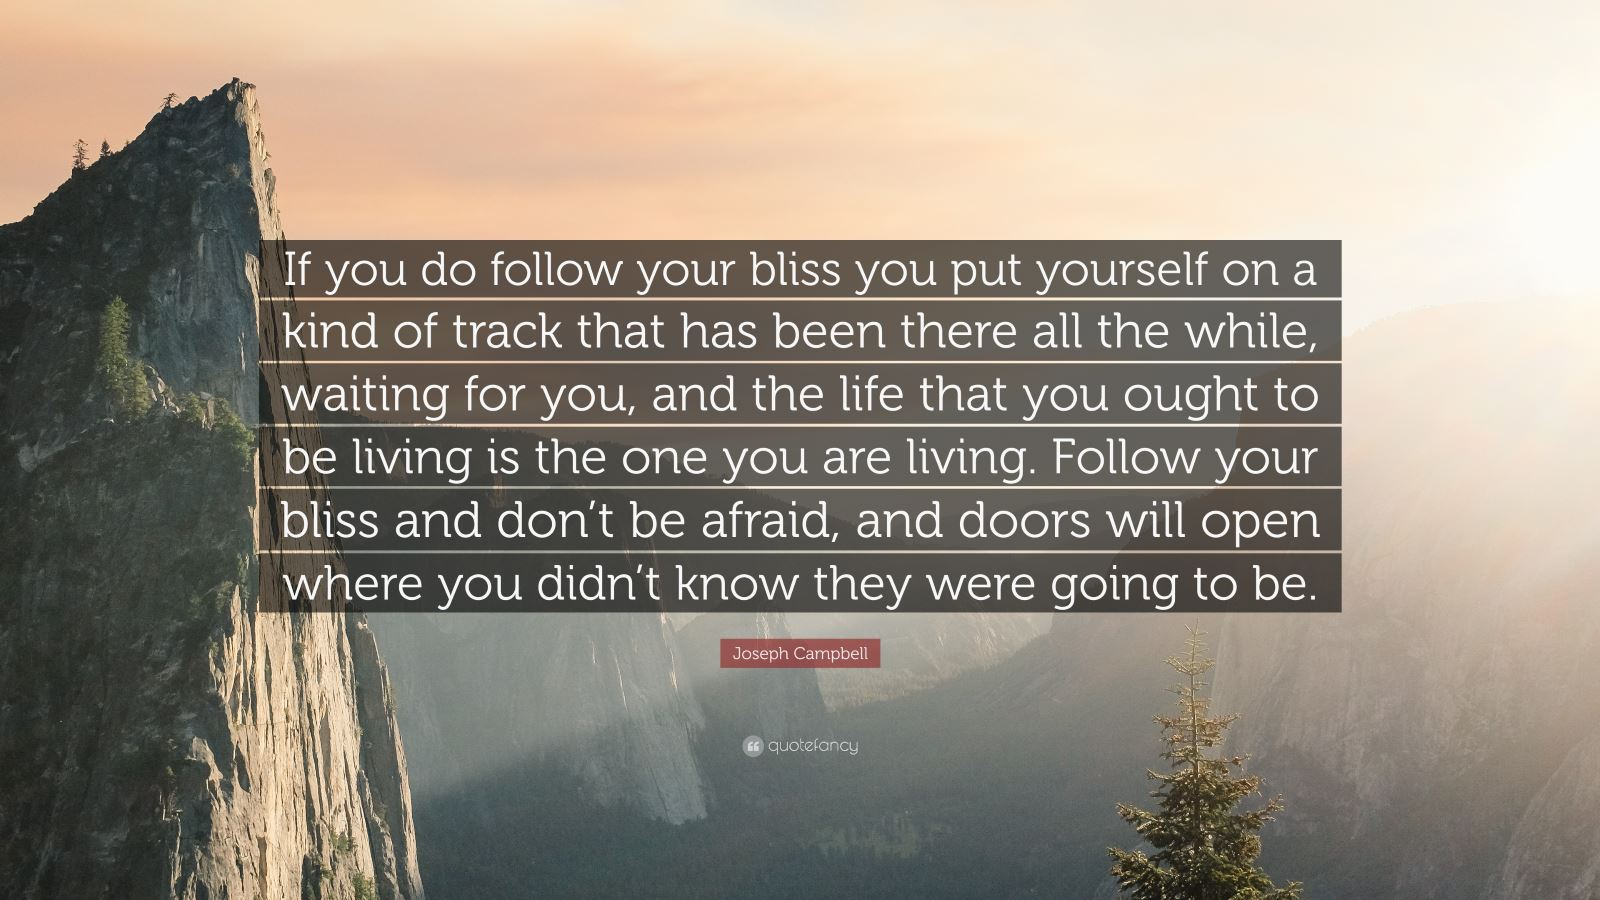 Joseph Campbell - Follow your bliss